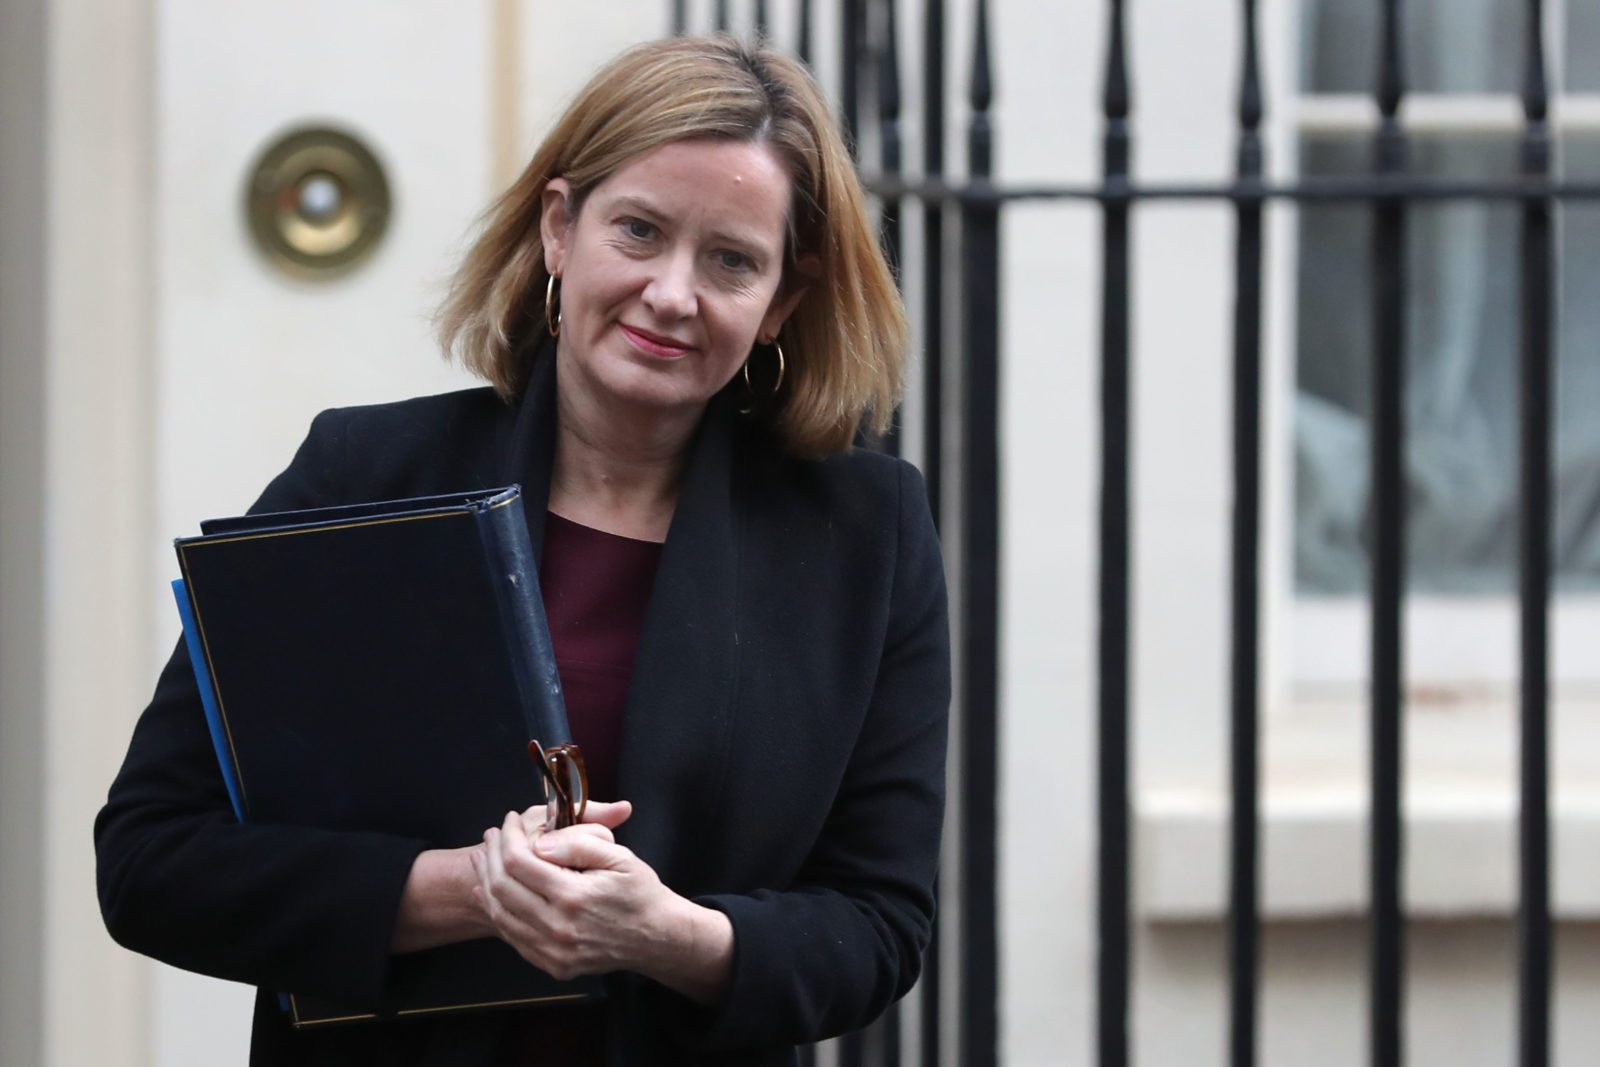 Amber Rudd: Why did she resign and what happens next